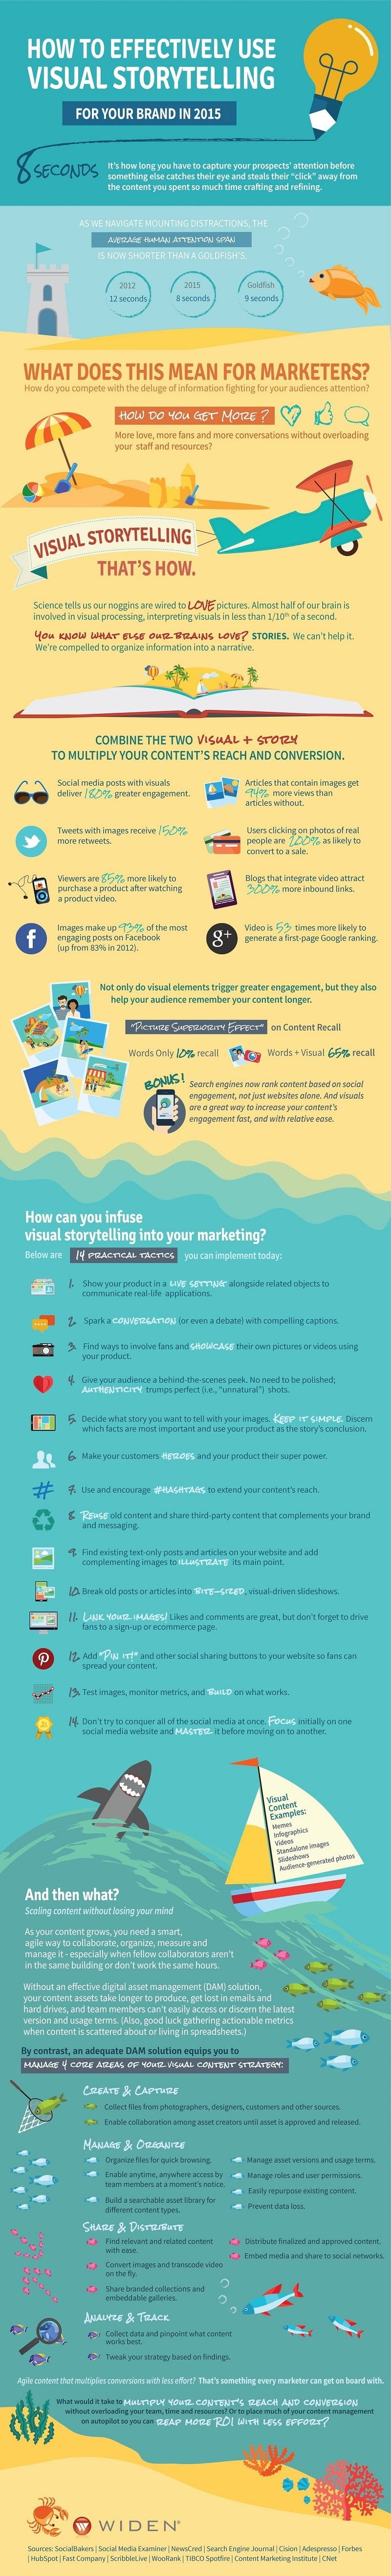 infographic using visuals for content marketing